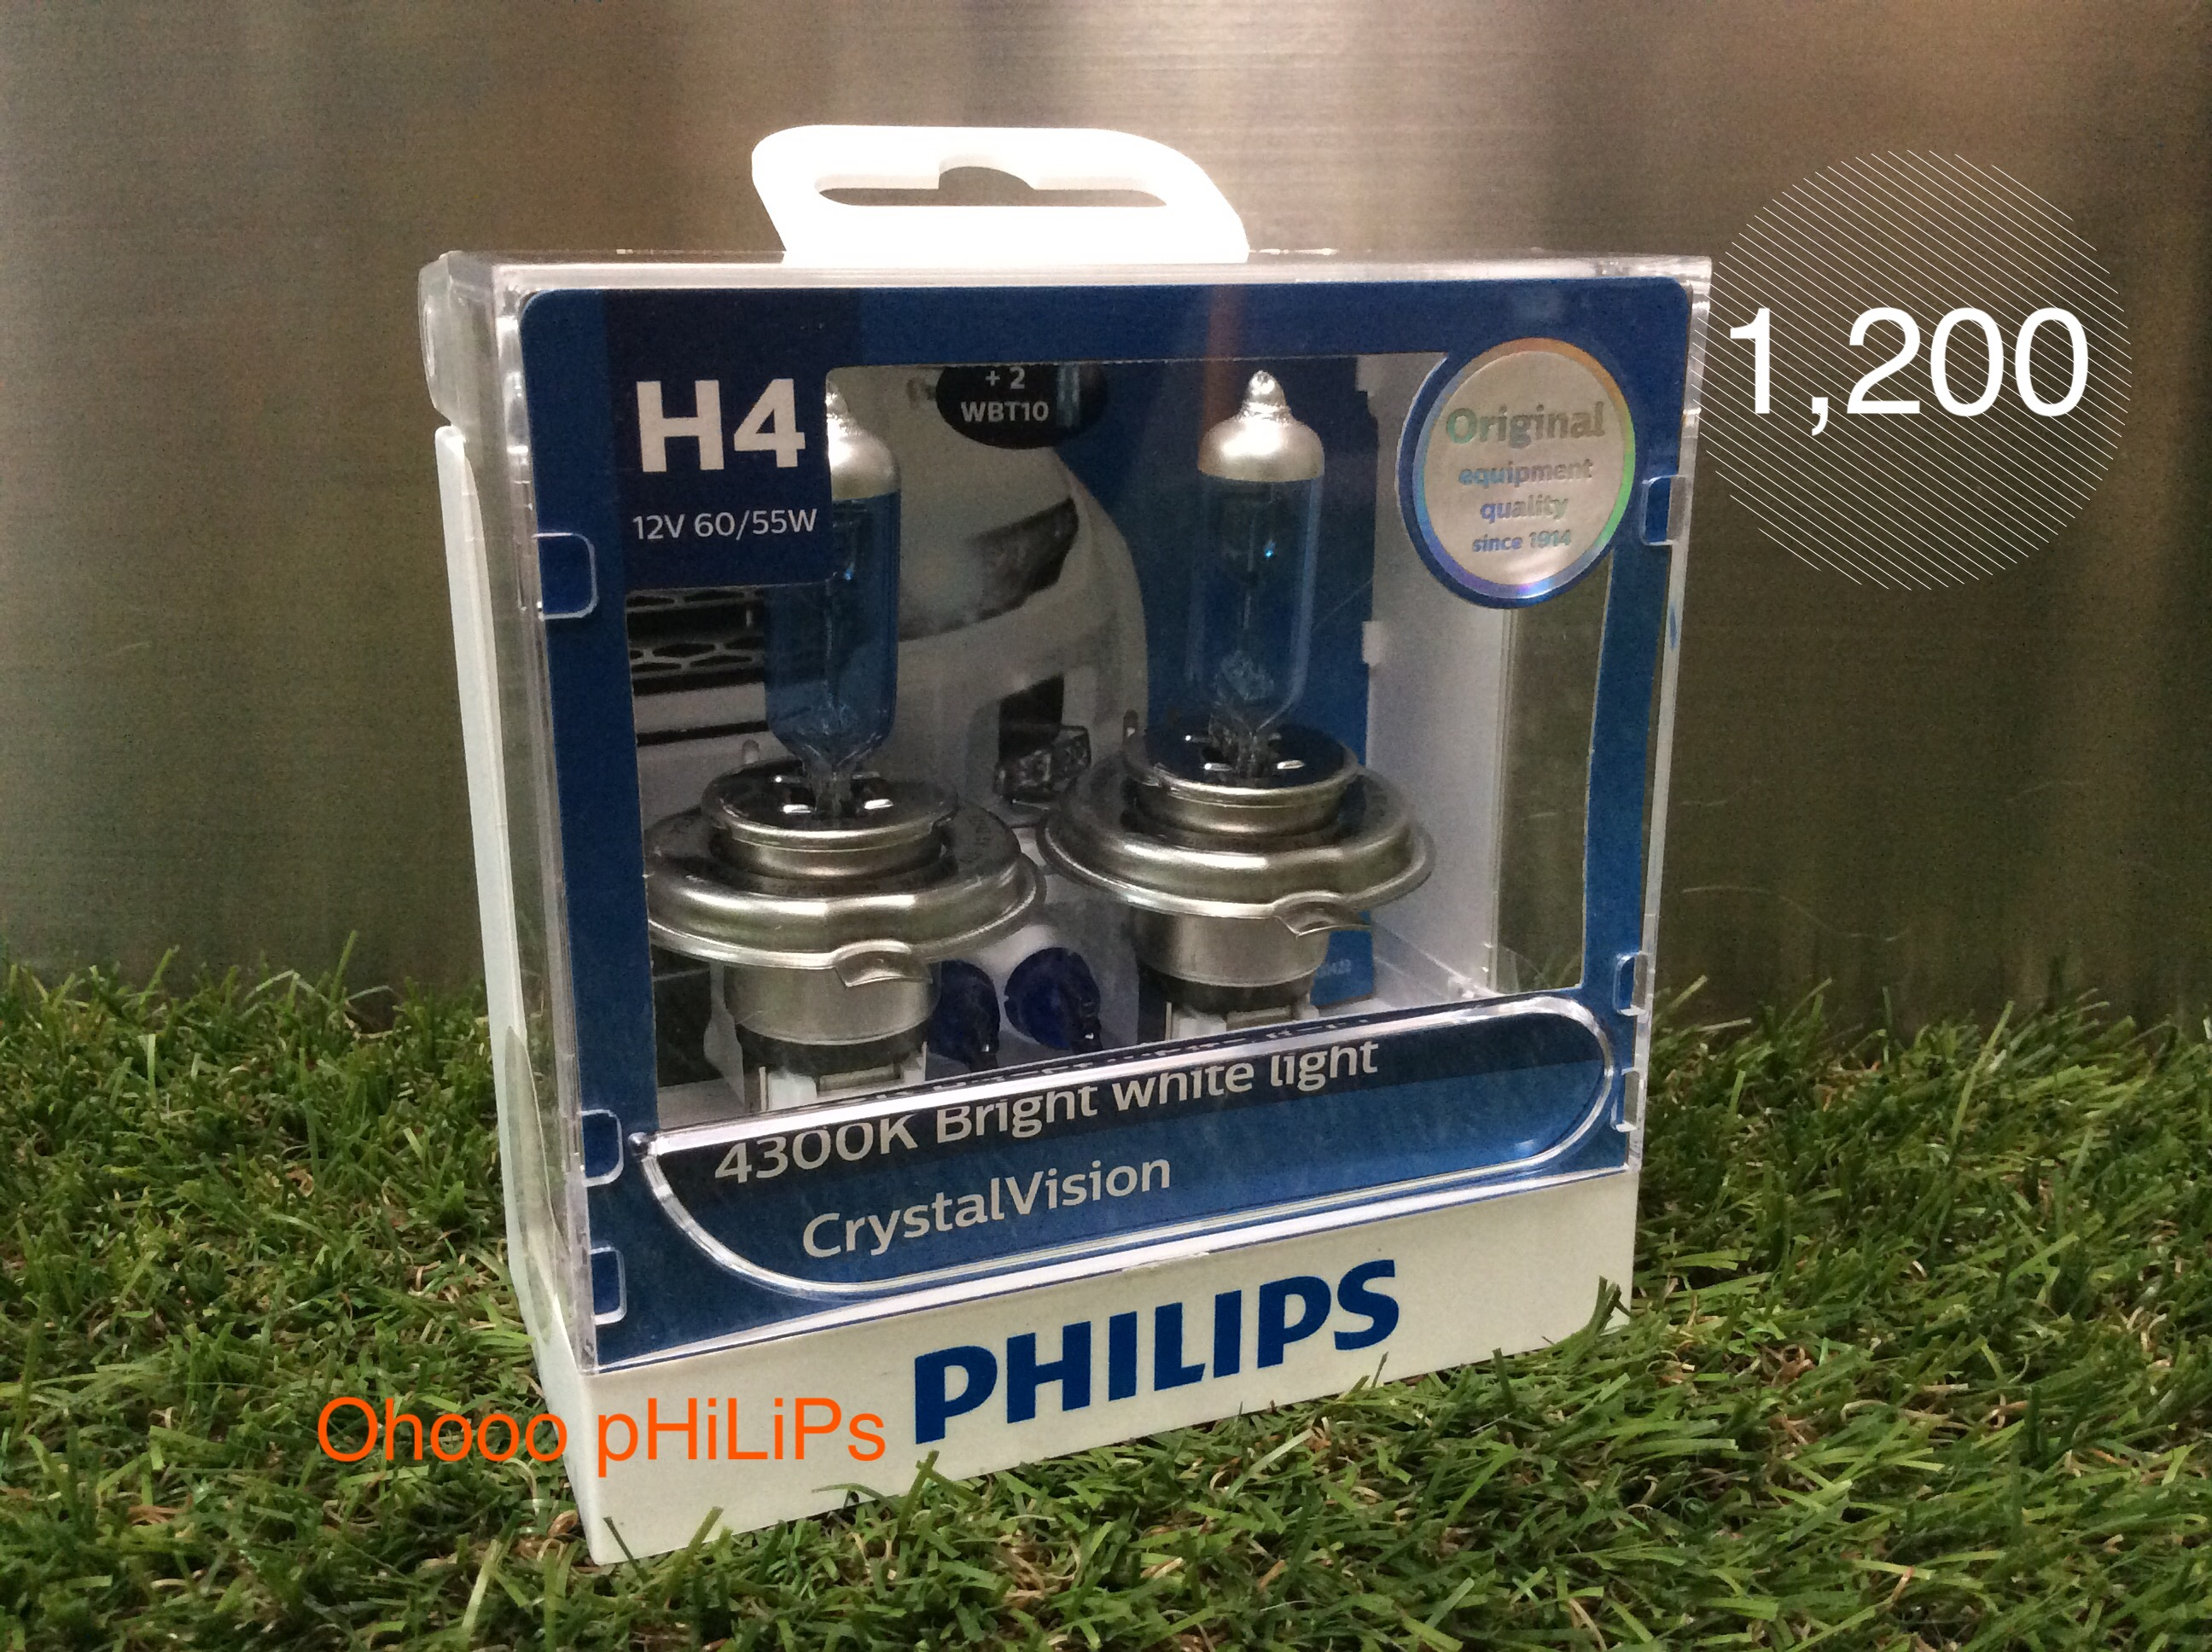 Philips Crystal Vision 4300K H4